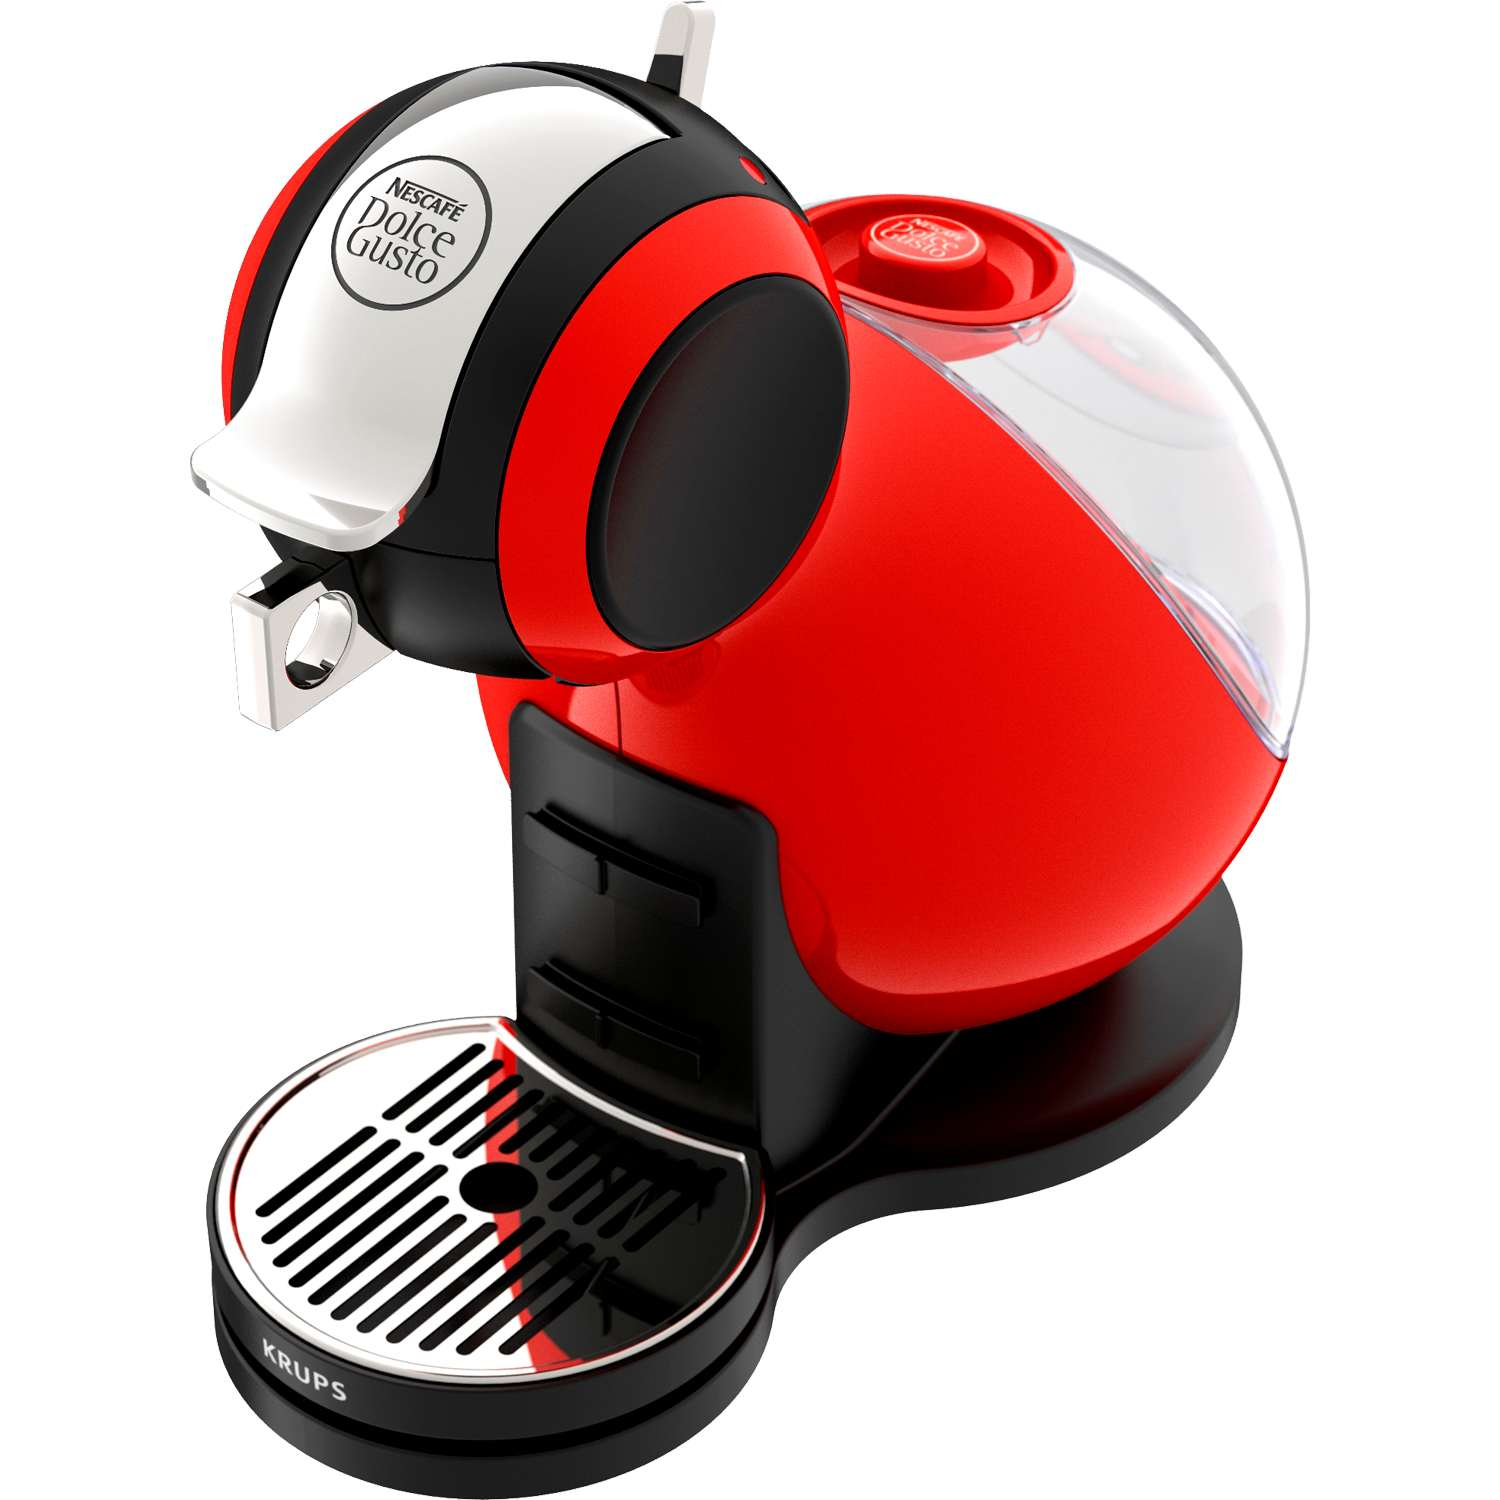 krups nescafe dolce gusto melody 3 coffee machine 15 bar 1 3l tank red kp220540 ebay. Black Bedroom Furniture Sets. Home Design Ideas